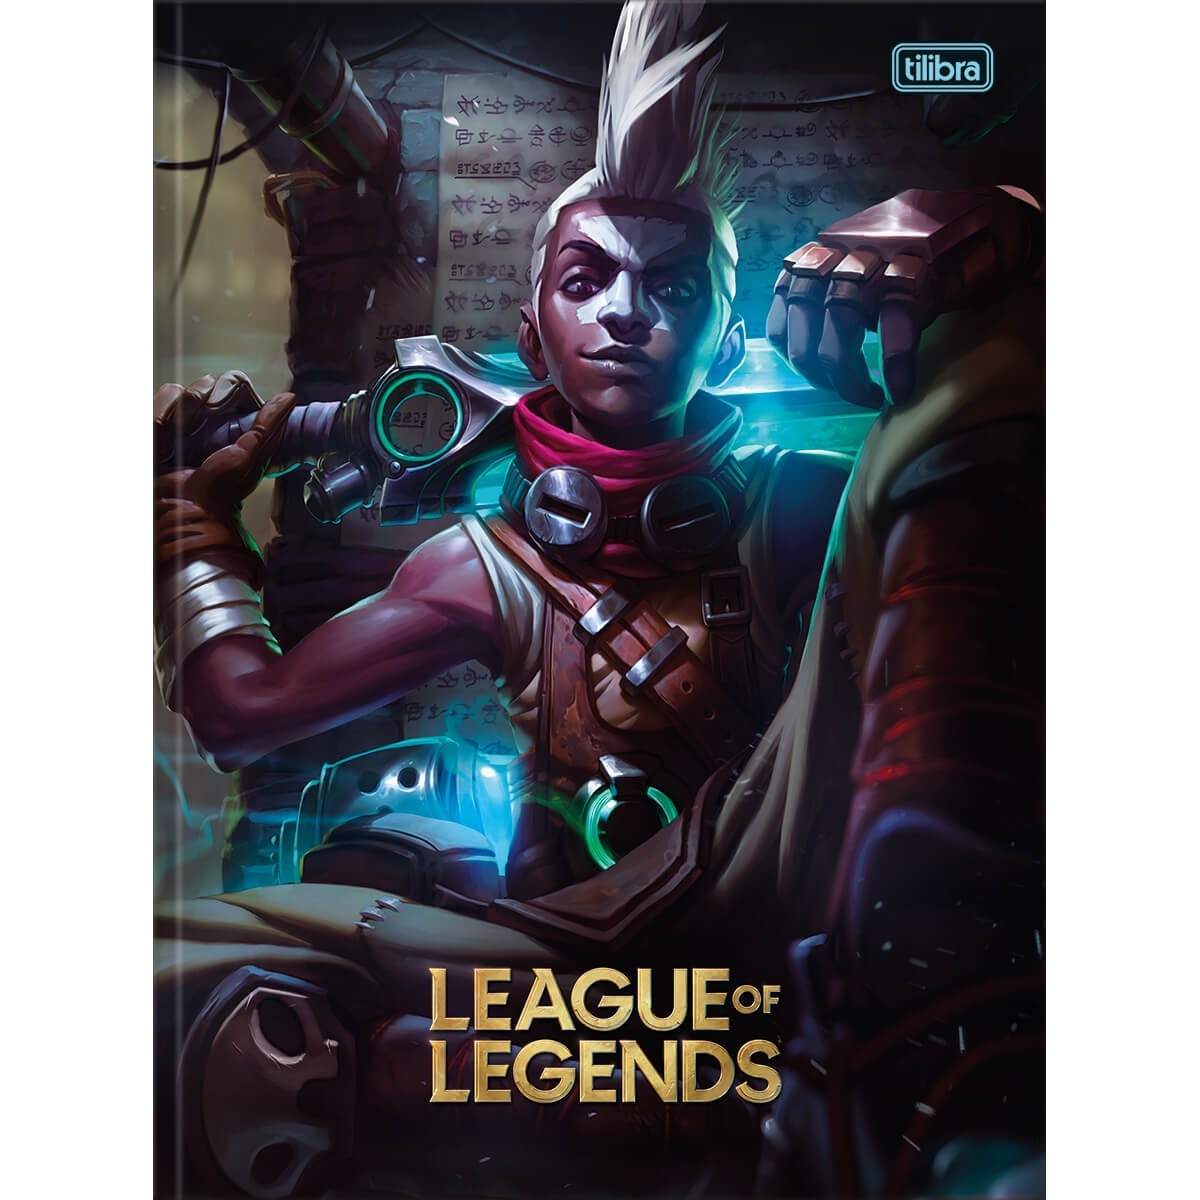 Caderno Brochura Capa Dura Universitário League of Legends Ekko 80 Folhas